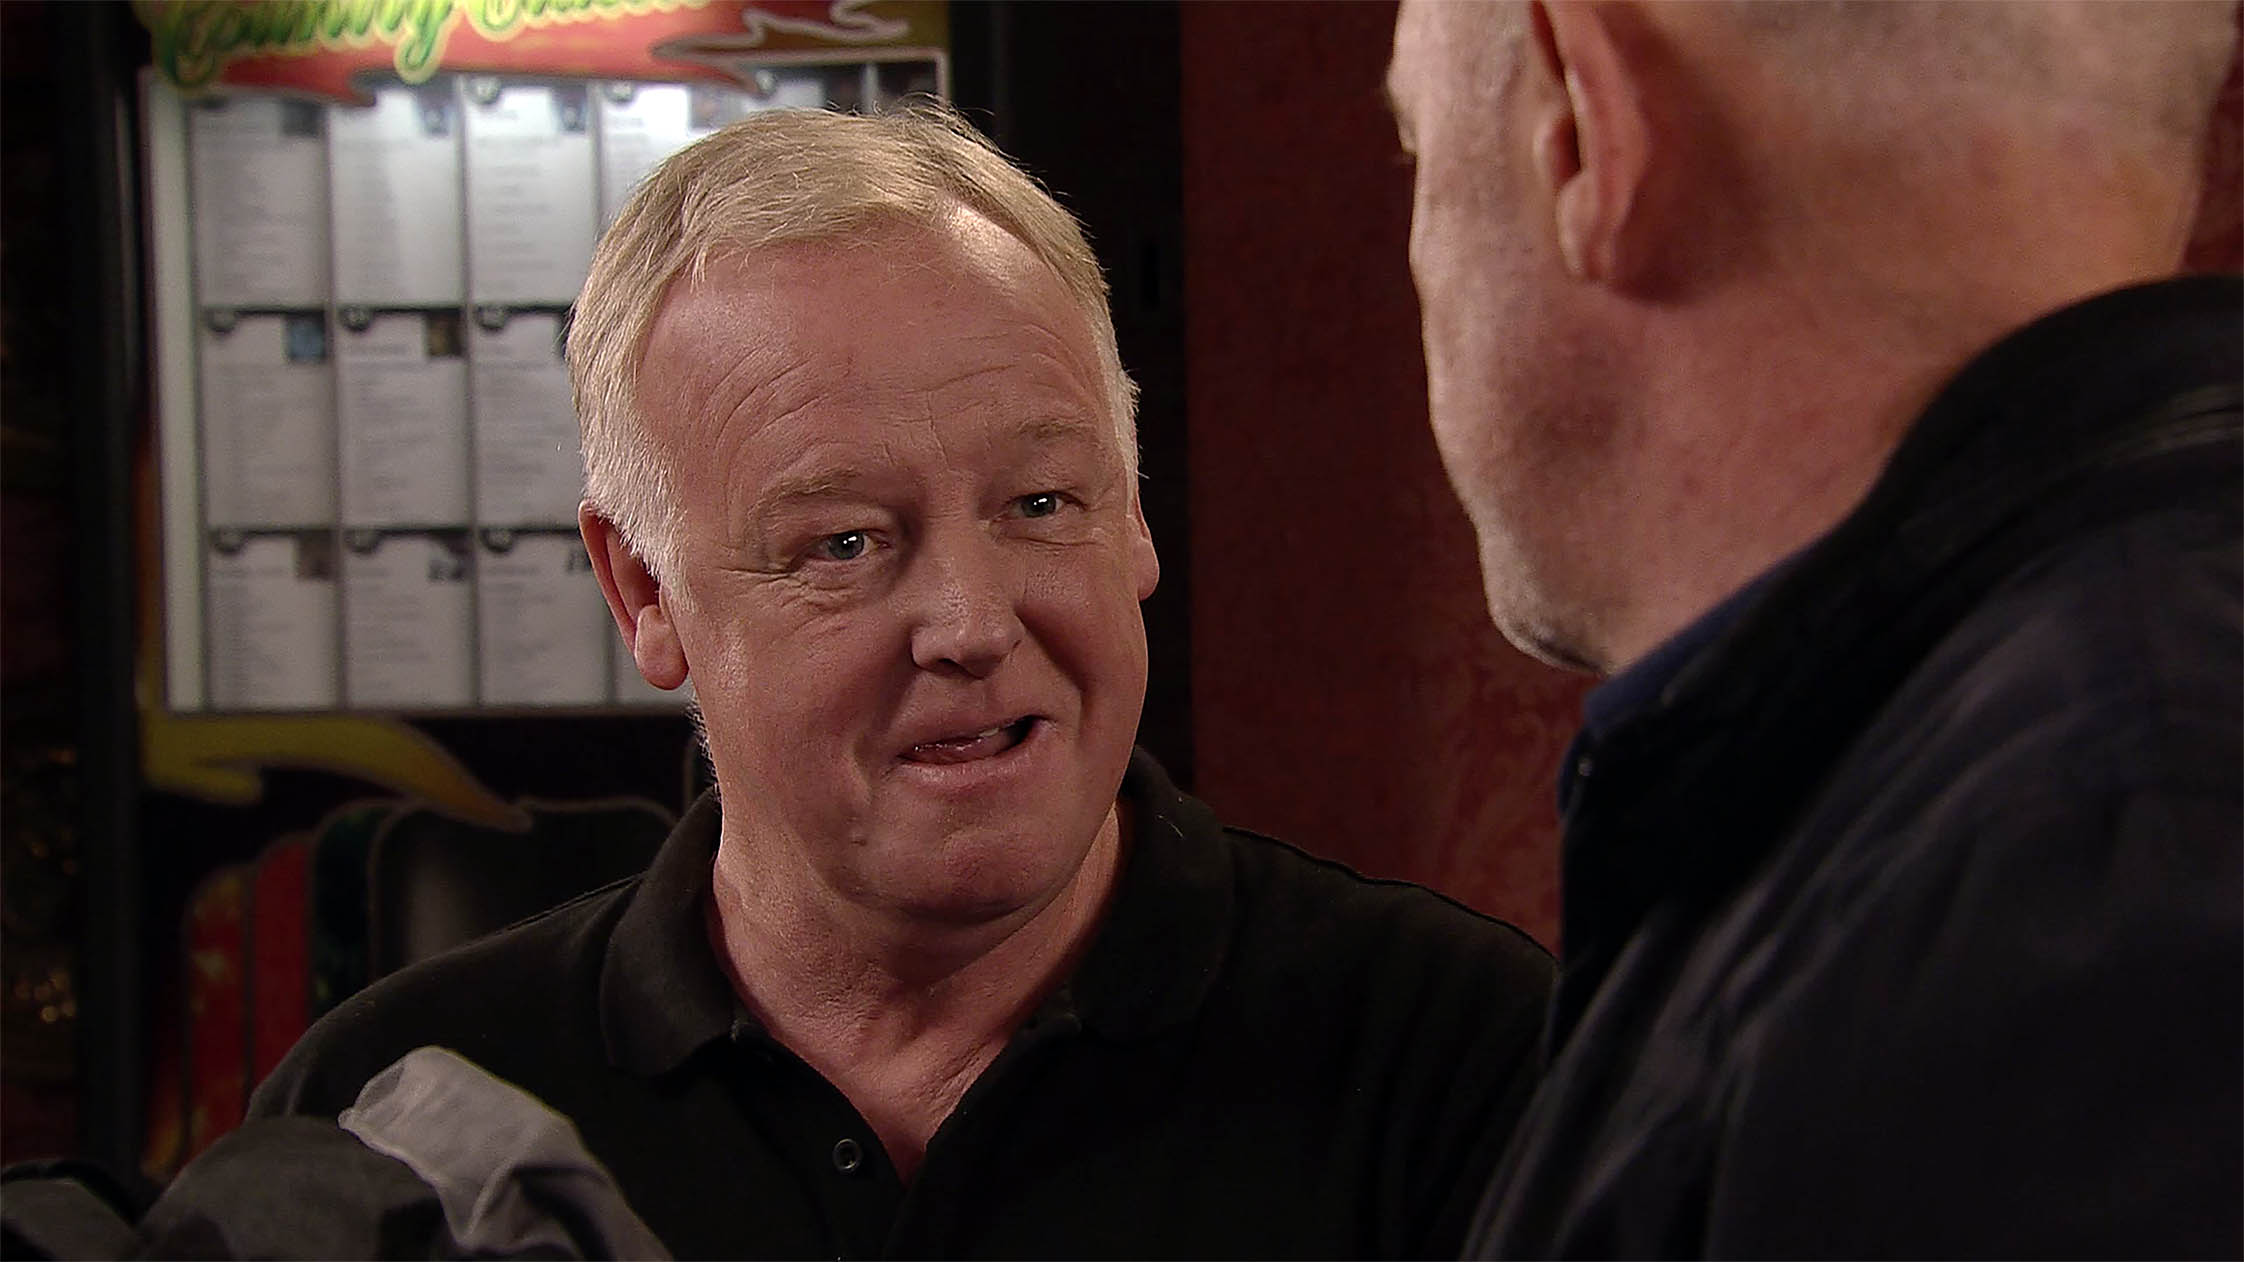 FROM ITV STRICT EMBARGO Tuesday 8 November 2016 Coronation Street - Ep 9035 Wednesday 16 November 2016 Phelan nner which alters the visual appearance of the person photographed deemed detrimental or inappropriate by ITV plc Picture Desk. This photograph must not be syndicated to any other company, publication or website, or permanently archived, without the express written permission of ITV Plc Picture Desk. Full Terms and conditions are available on the website www.itvpictures.com